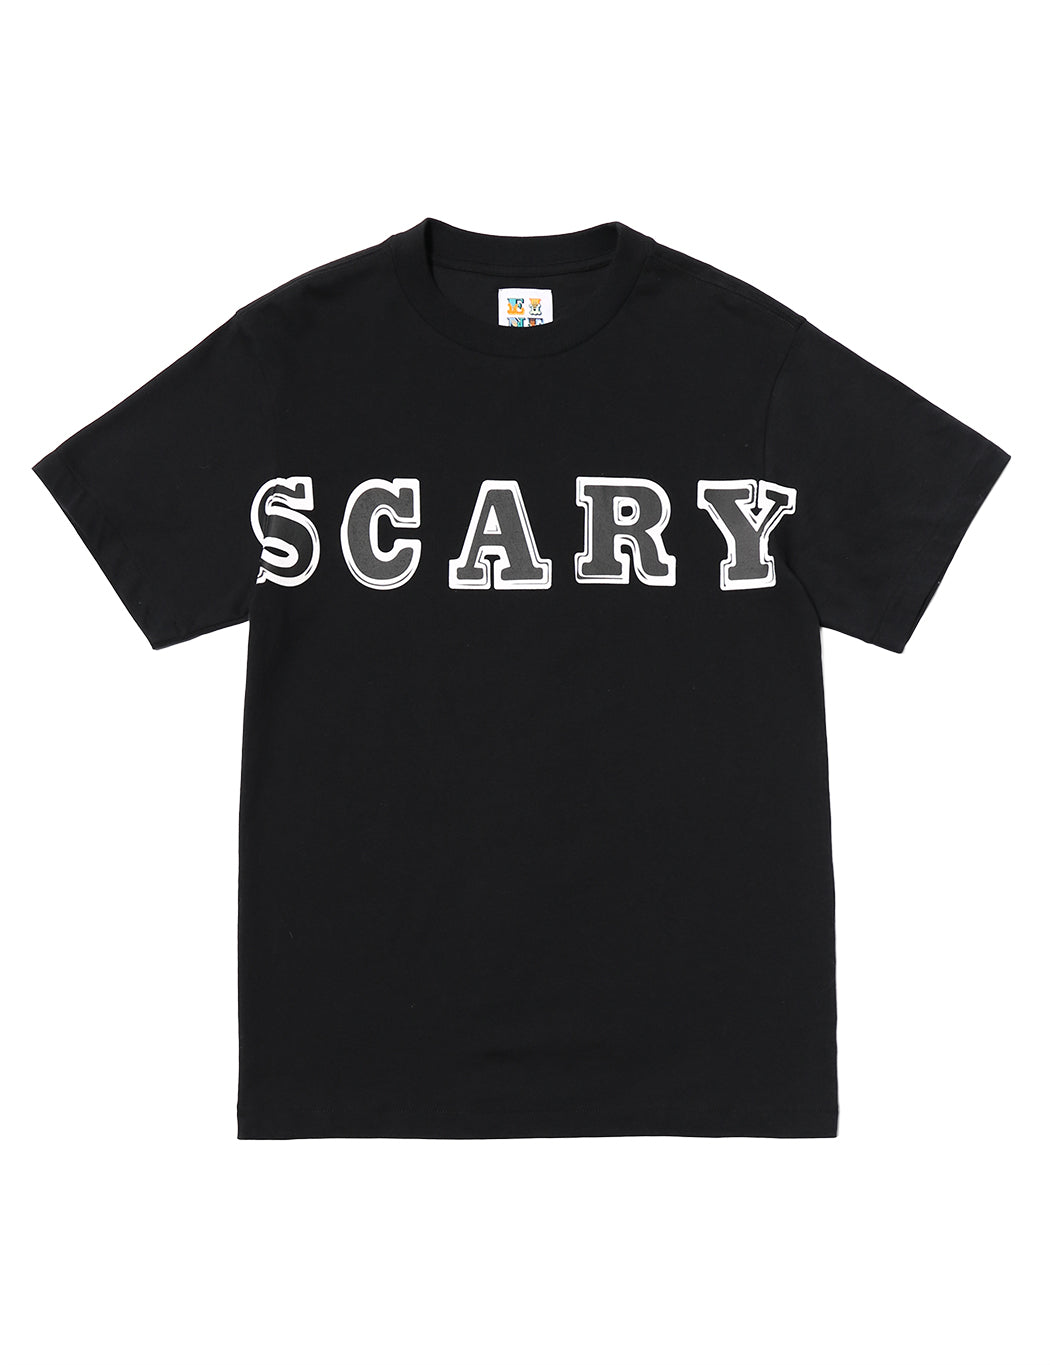 SCARY Oversized Text S/S T-Shirt - Black - Eine London by Ben Eine